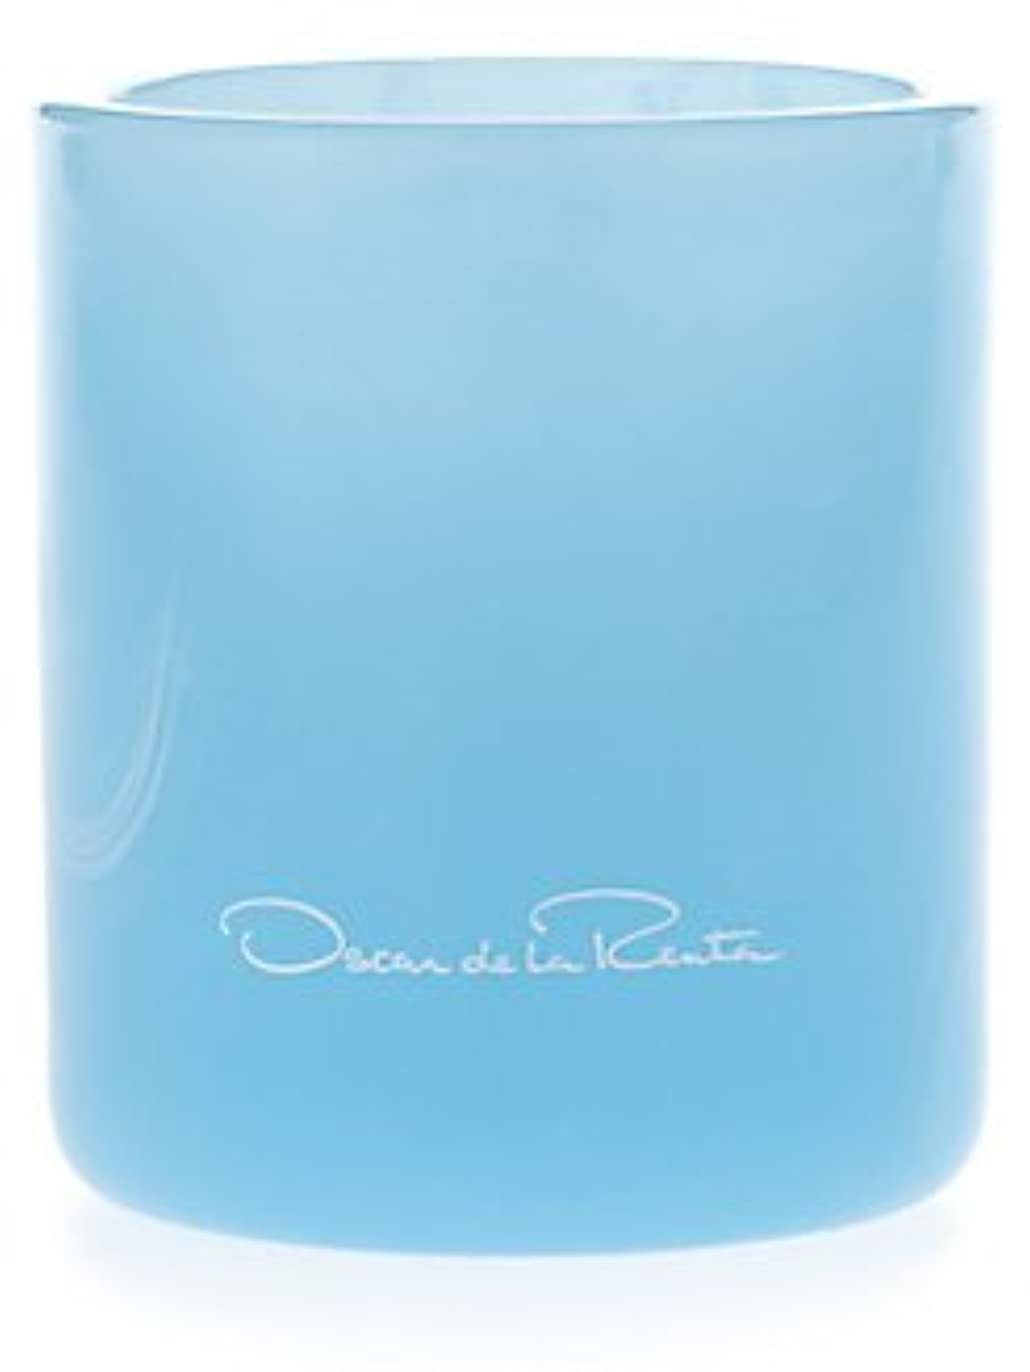 競うばかげている混沌Something Blue (サムシング?ブルー) 7.0 oz (210ml) Candle by Oscar de la Renta for Women